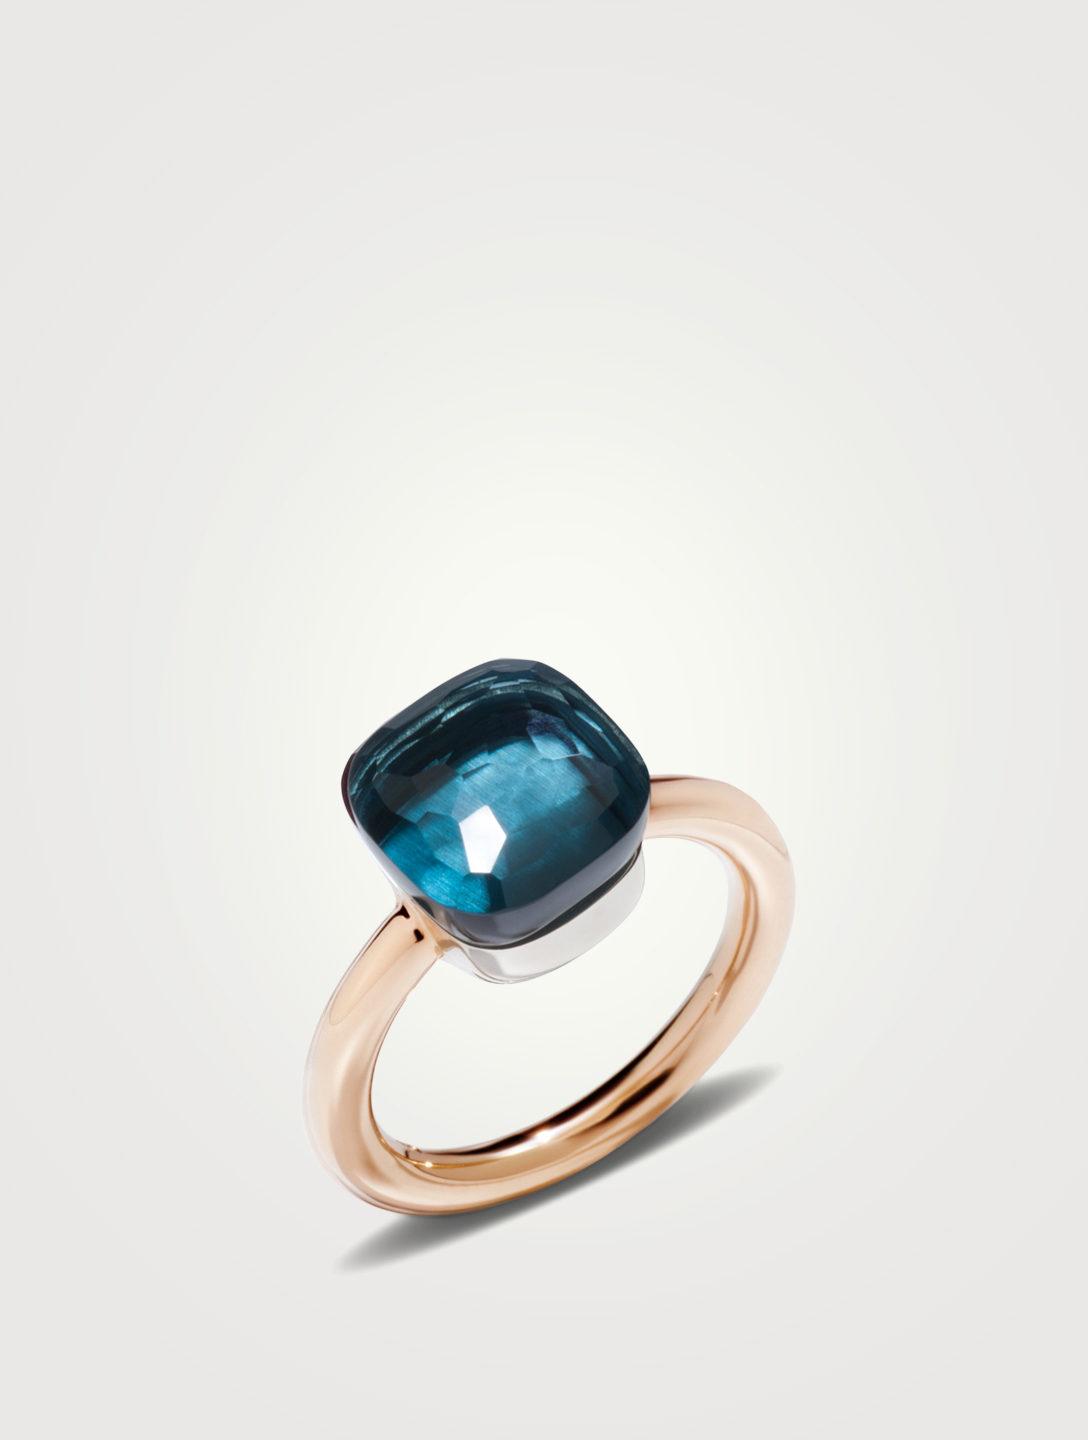 POMELLATO Classic Nudo 18K White And Rose Gold Ring With London Blue Topaz Women's Metallic